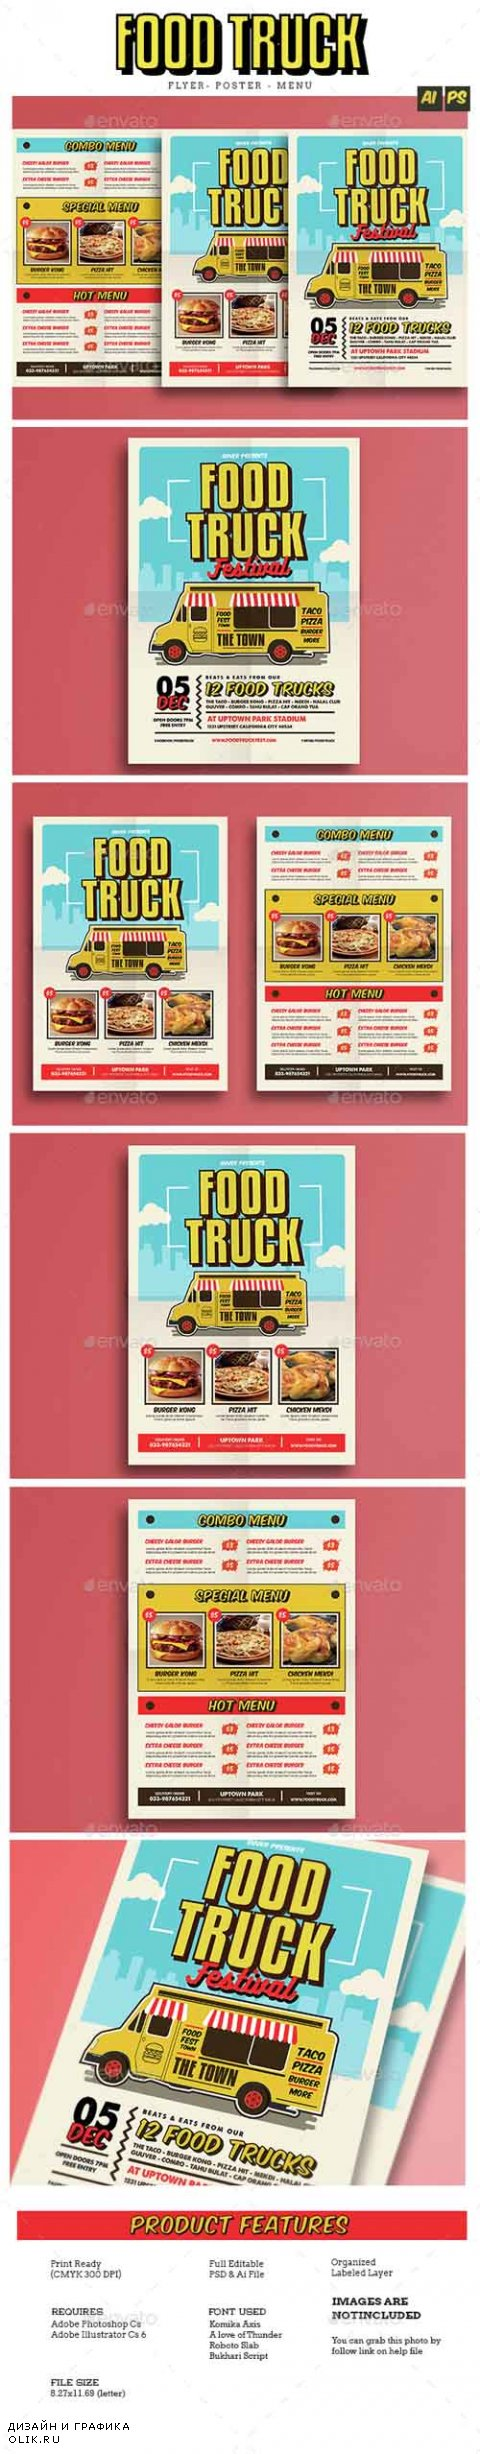 Pop Art Food Truck Flyer/Poster/Menu 14857358